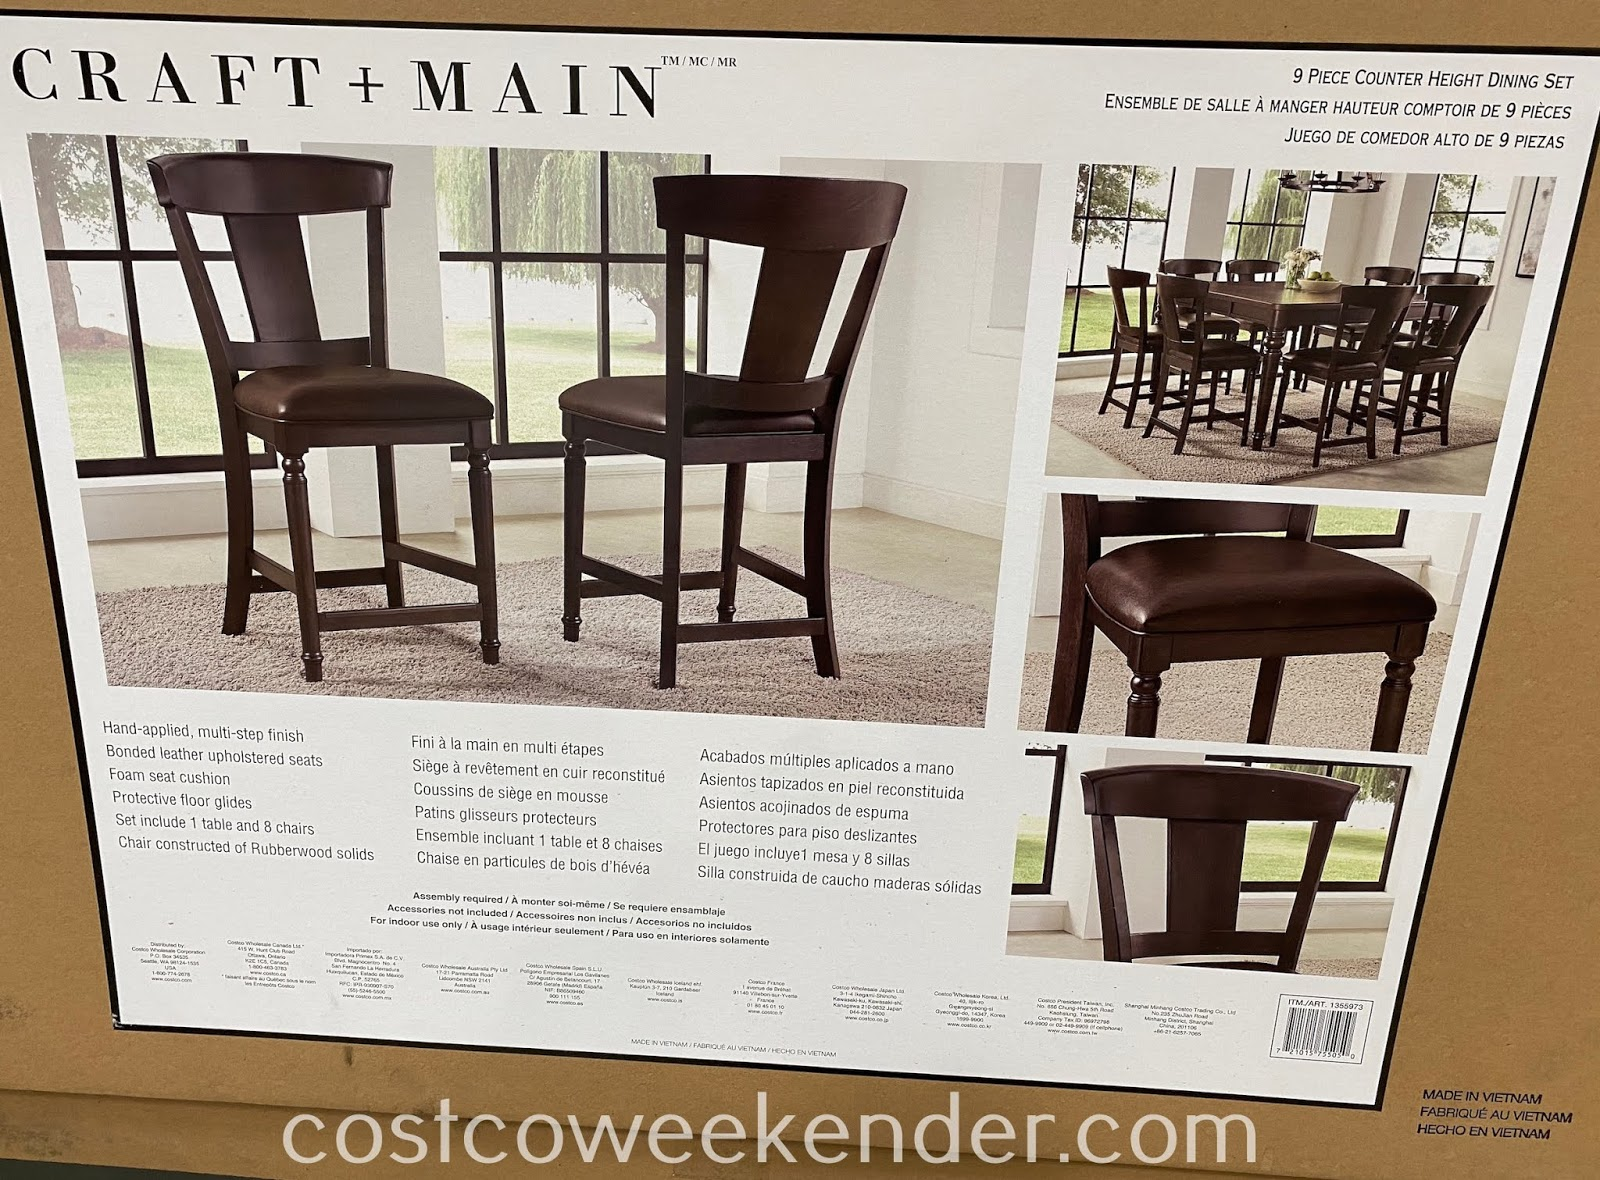 Have a nice meal with the family with the Craft + Main Counter Height Dining Set